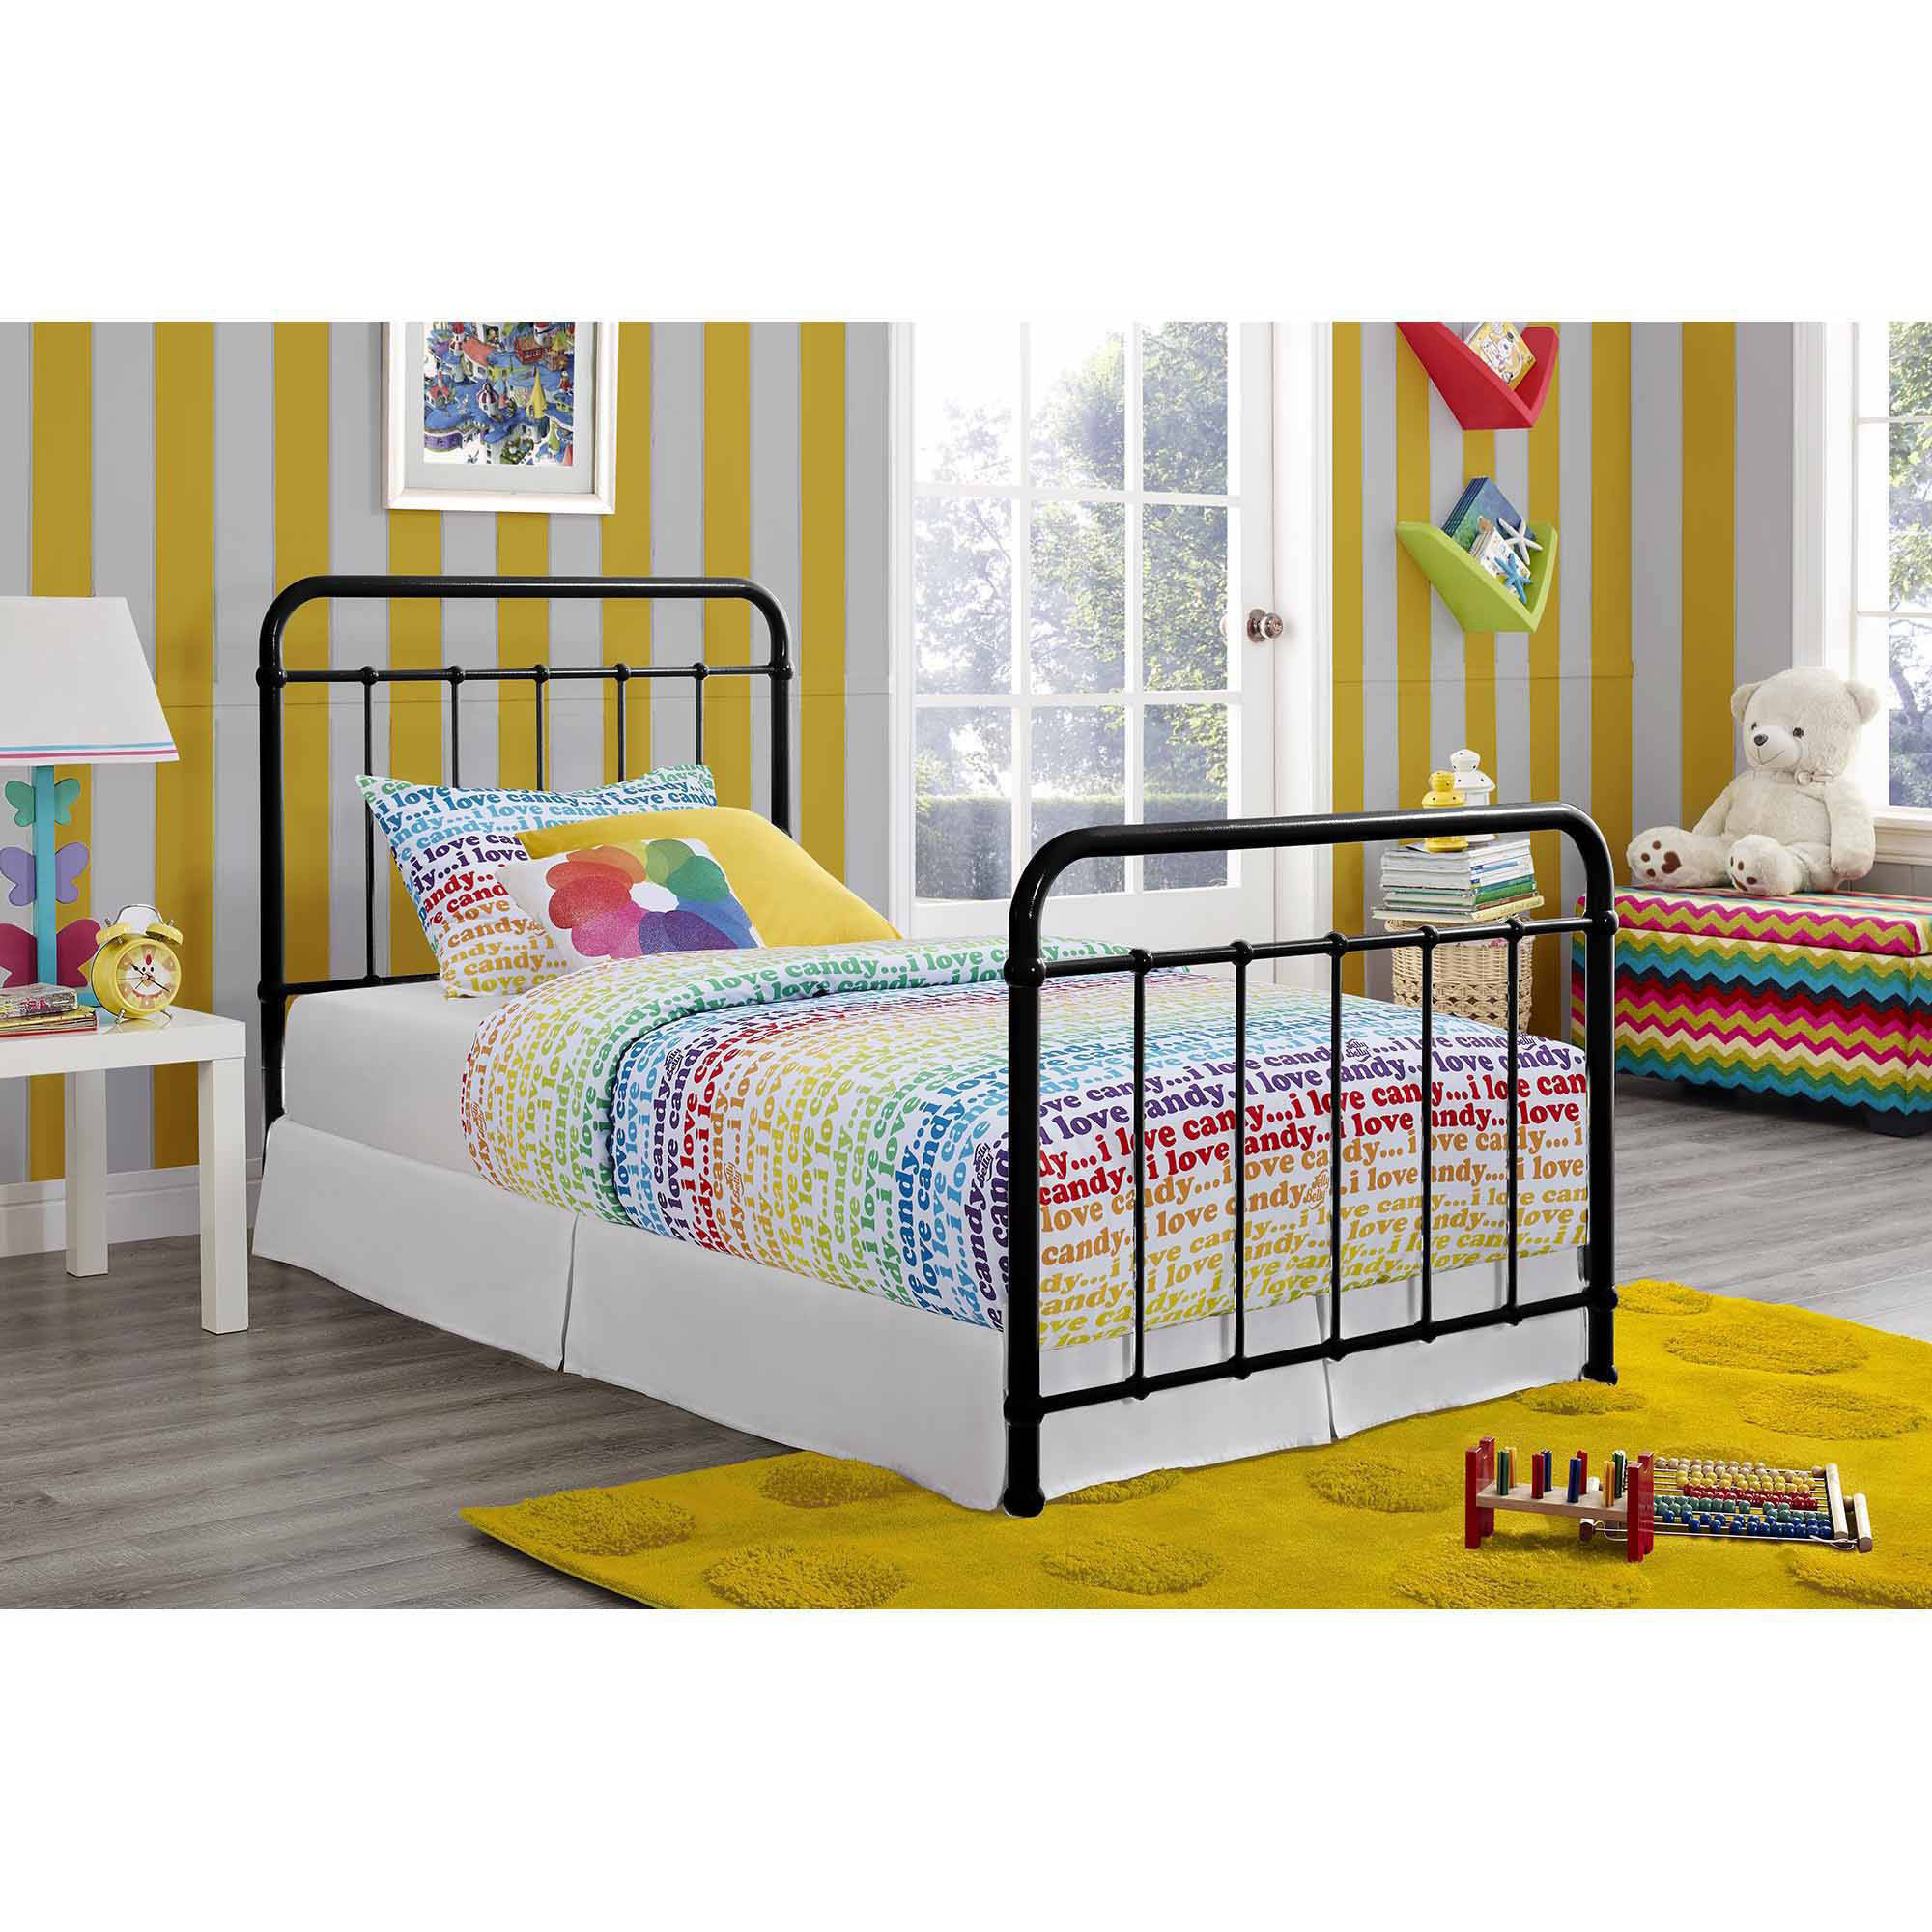 storage twin item bed black furniture bcp coaster and drawers collections la s fine with trundle salle captain